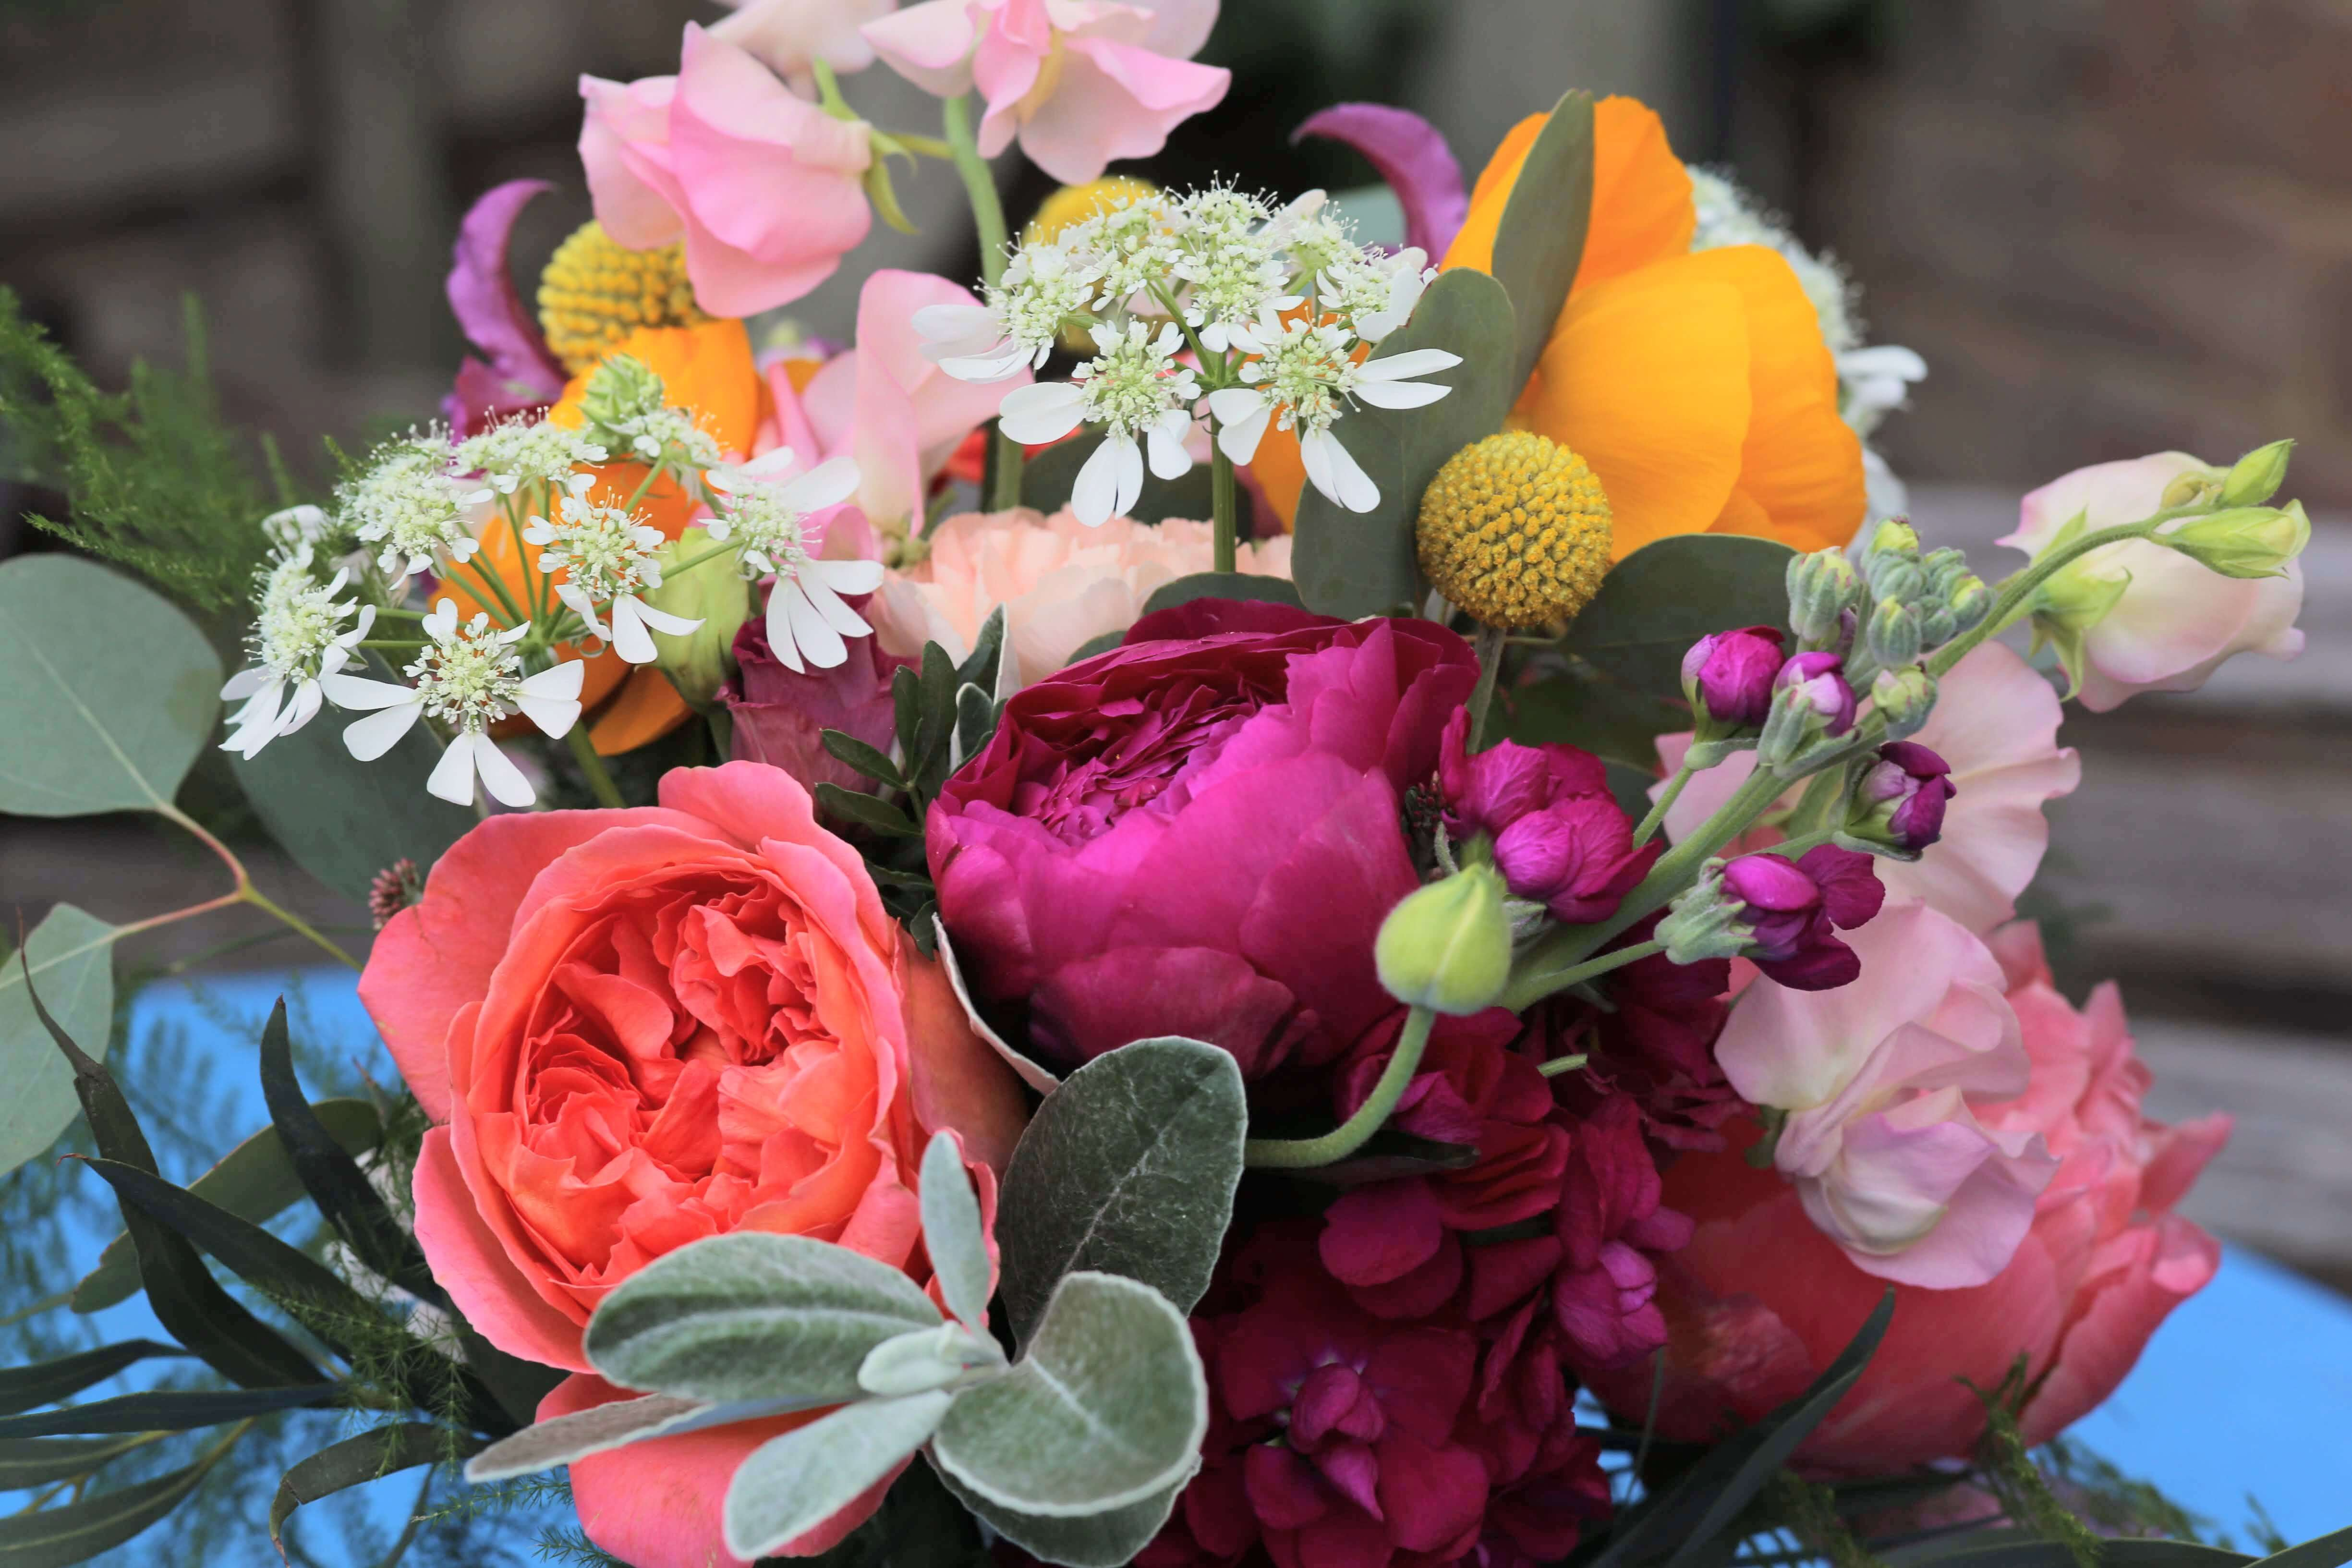 Bright and colourful bridal bouquet with peonies, ranunculus and garden roses by Bettie Rose Flowers, Sussex wedding florist